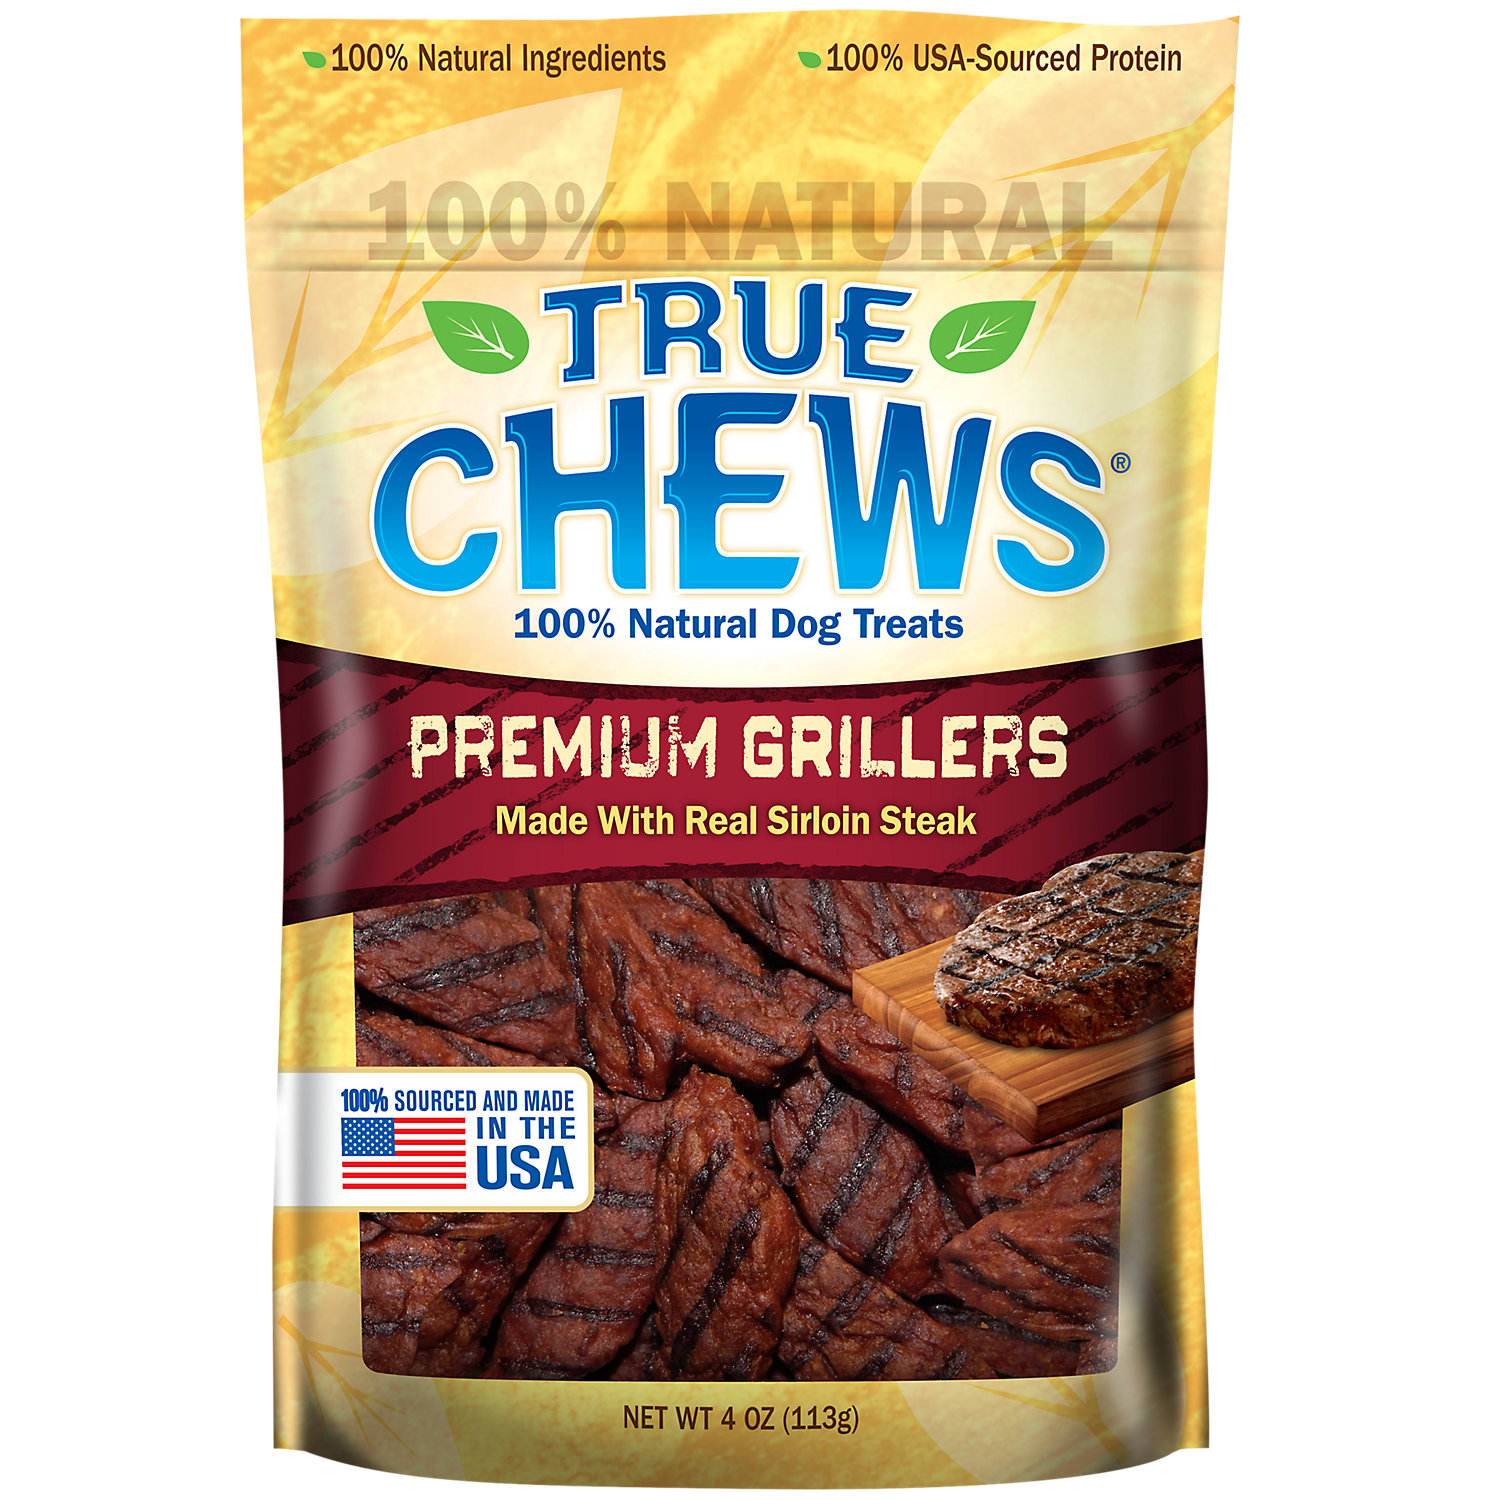 True Chews Premium Grillers Made With Real Steak Dog Treats 4 Oz.